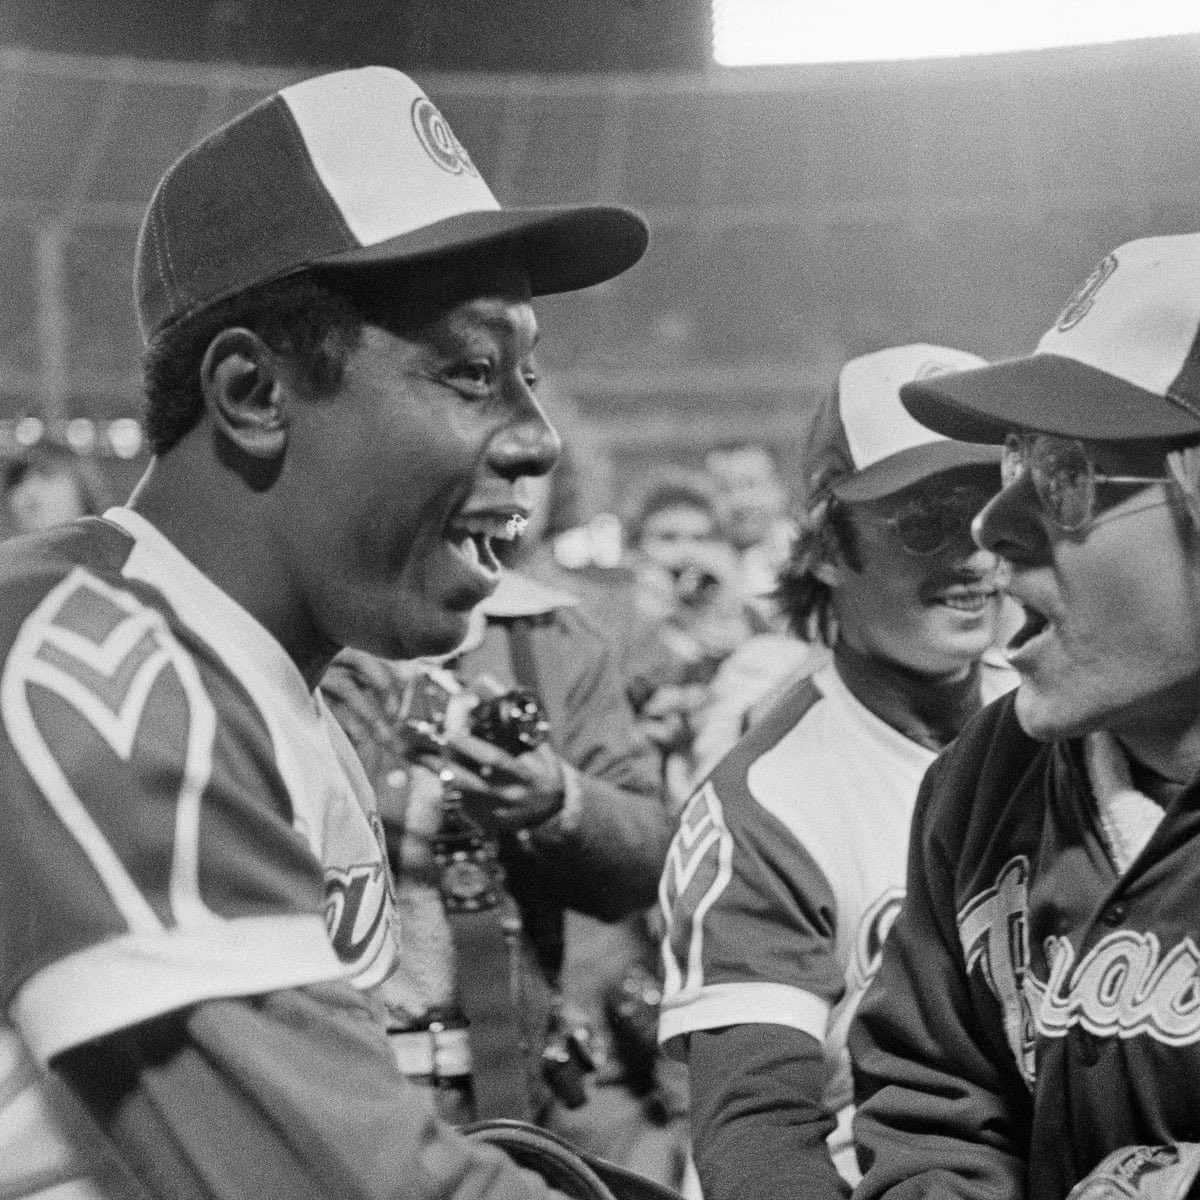 1/ Hank Aaron changed my life. The greatest moment I ever got to be a part of was catching 715. That moment bonded us forever as friends and teammates. My heart hurts today to learn of his passing. We watched Hank shrug off the weight of the world and just keep swinging.